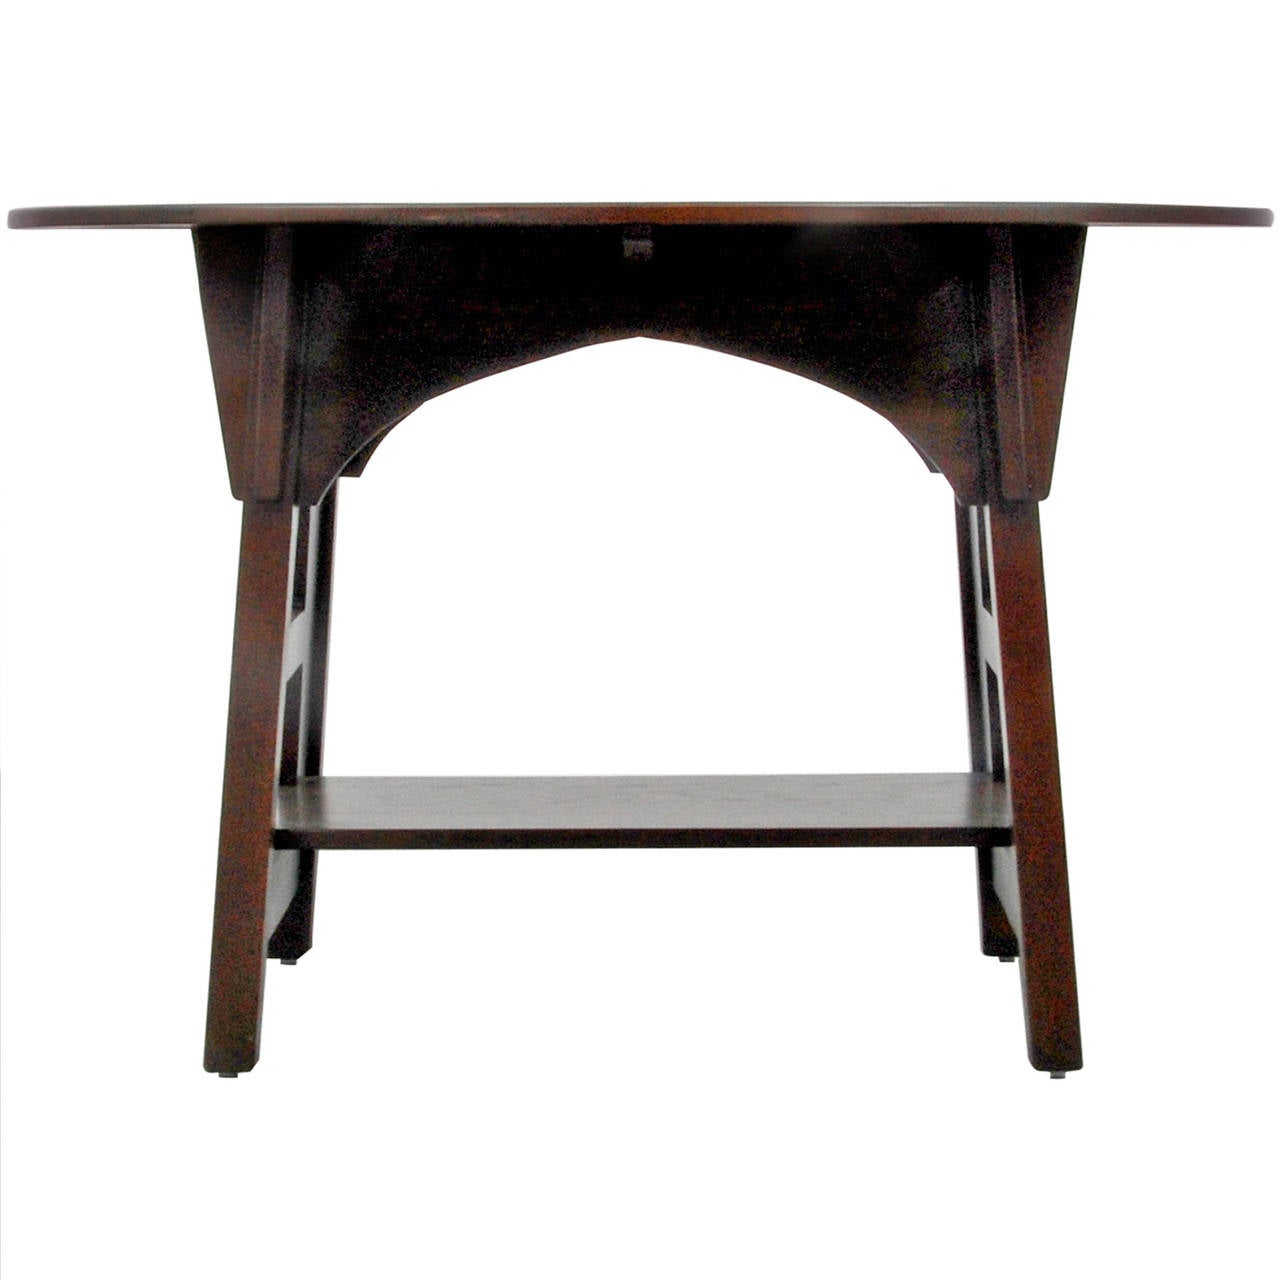 Rare limbert one drawer mission oak console table with backsplash charles limbert mission library table geotapseo Image collections